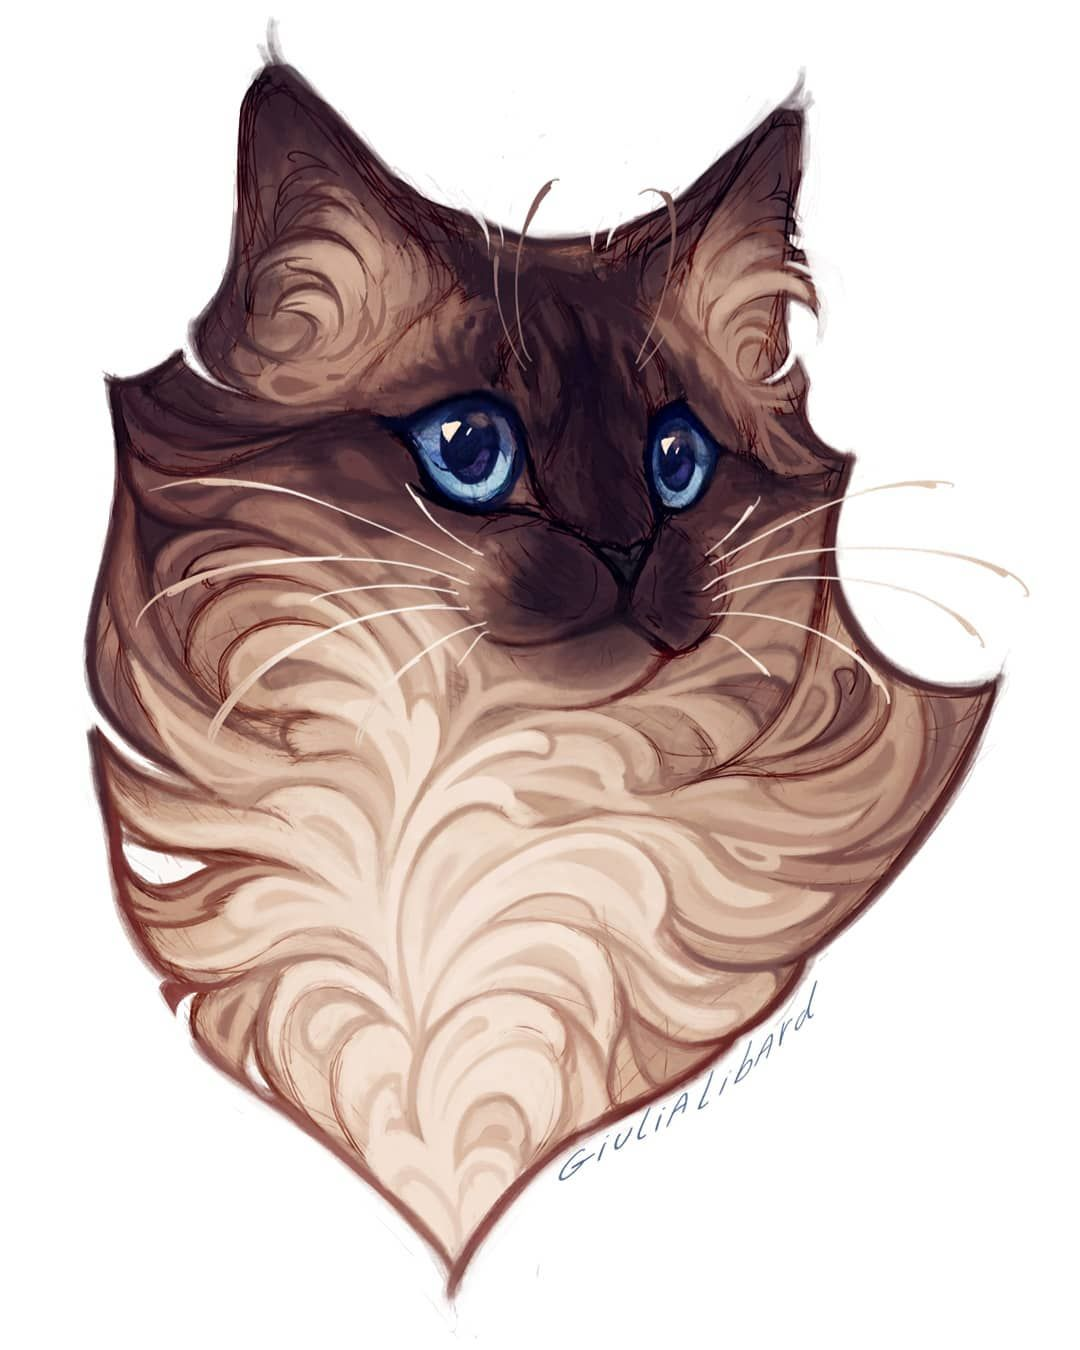 Commission For Savvy B And Kitties Commission Petportrait Portrait Cat Cats Pets Pet Animal Animals Animalart Cat Art Cat Drawing Animal Art